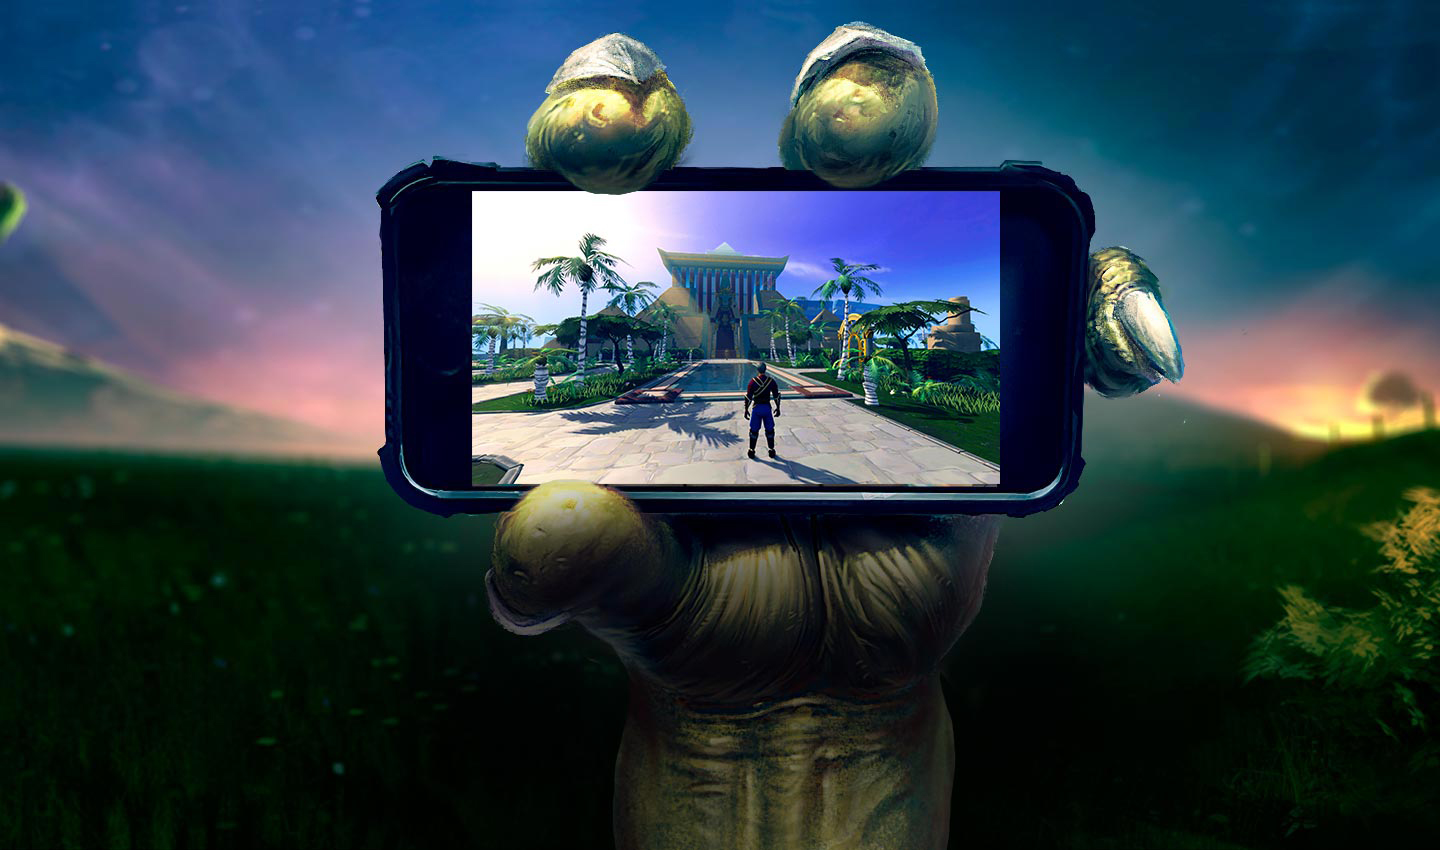 RuneScape and Old School RuneScape are coming to mobile devices